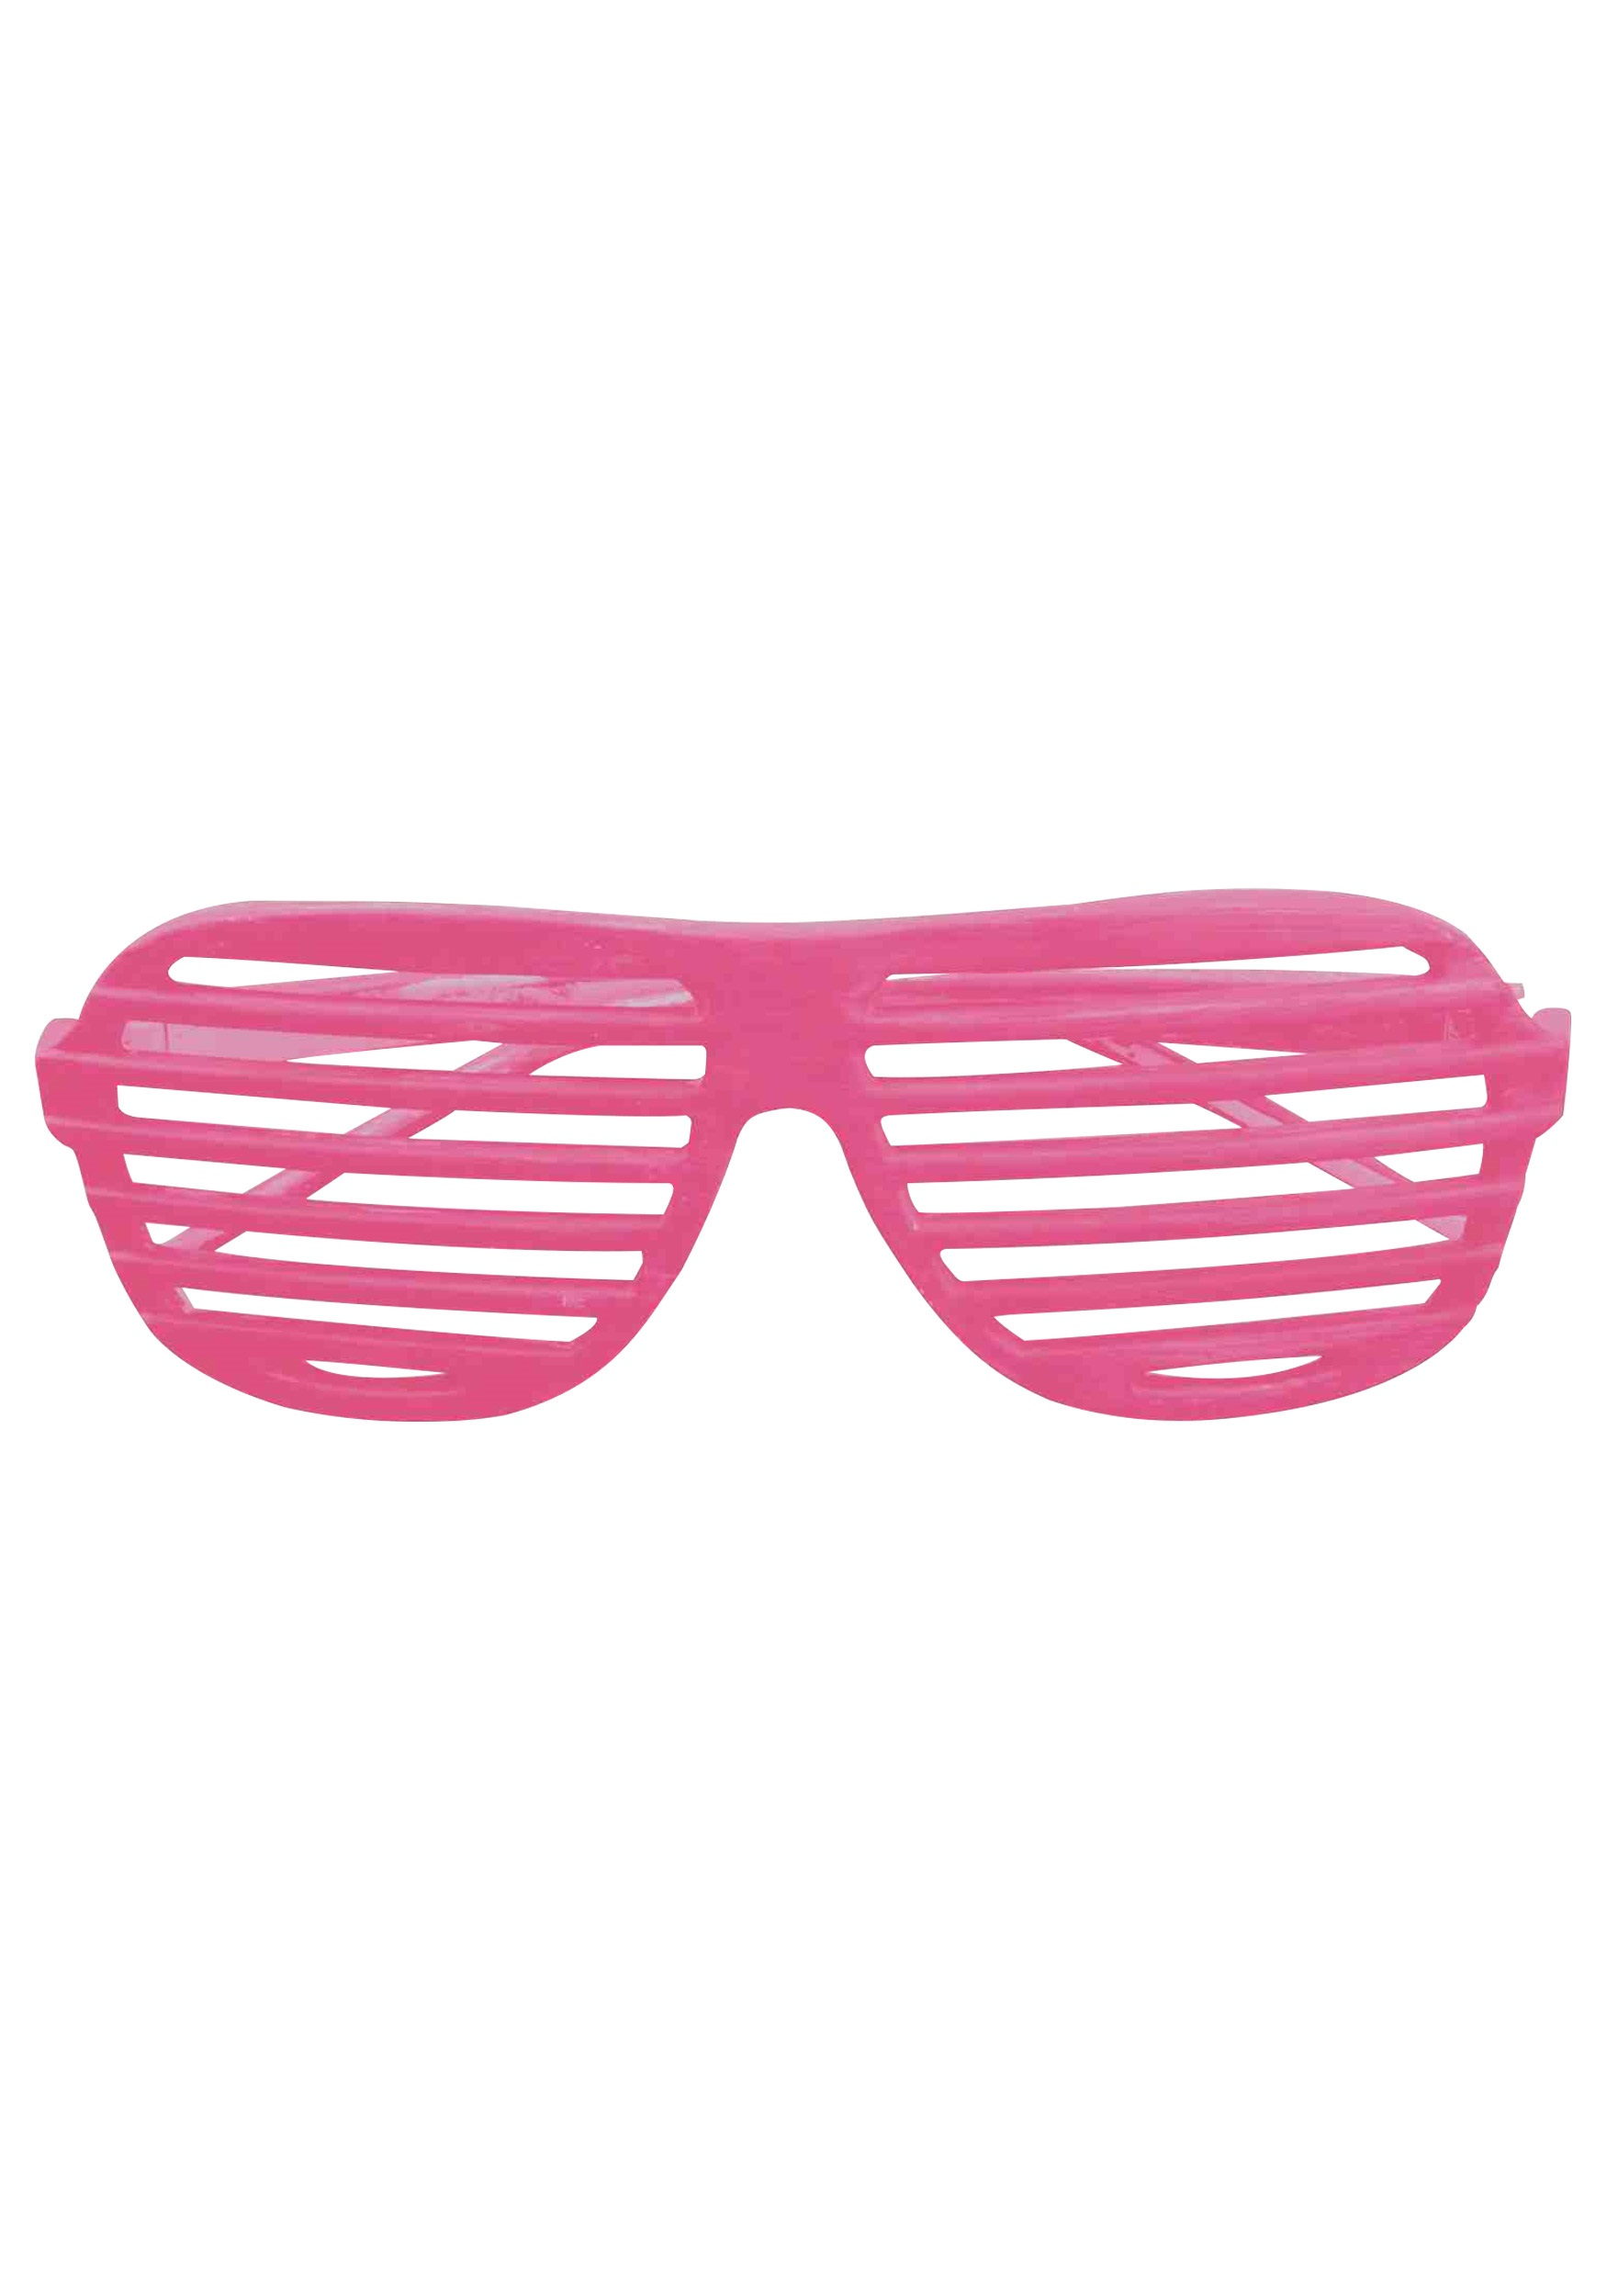 Neon sunglasses clipart.